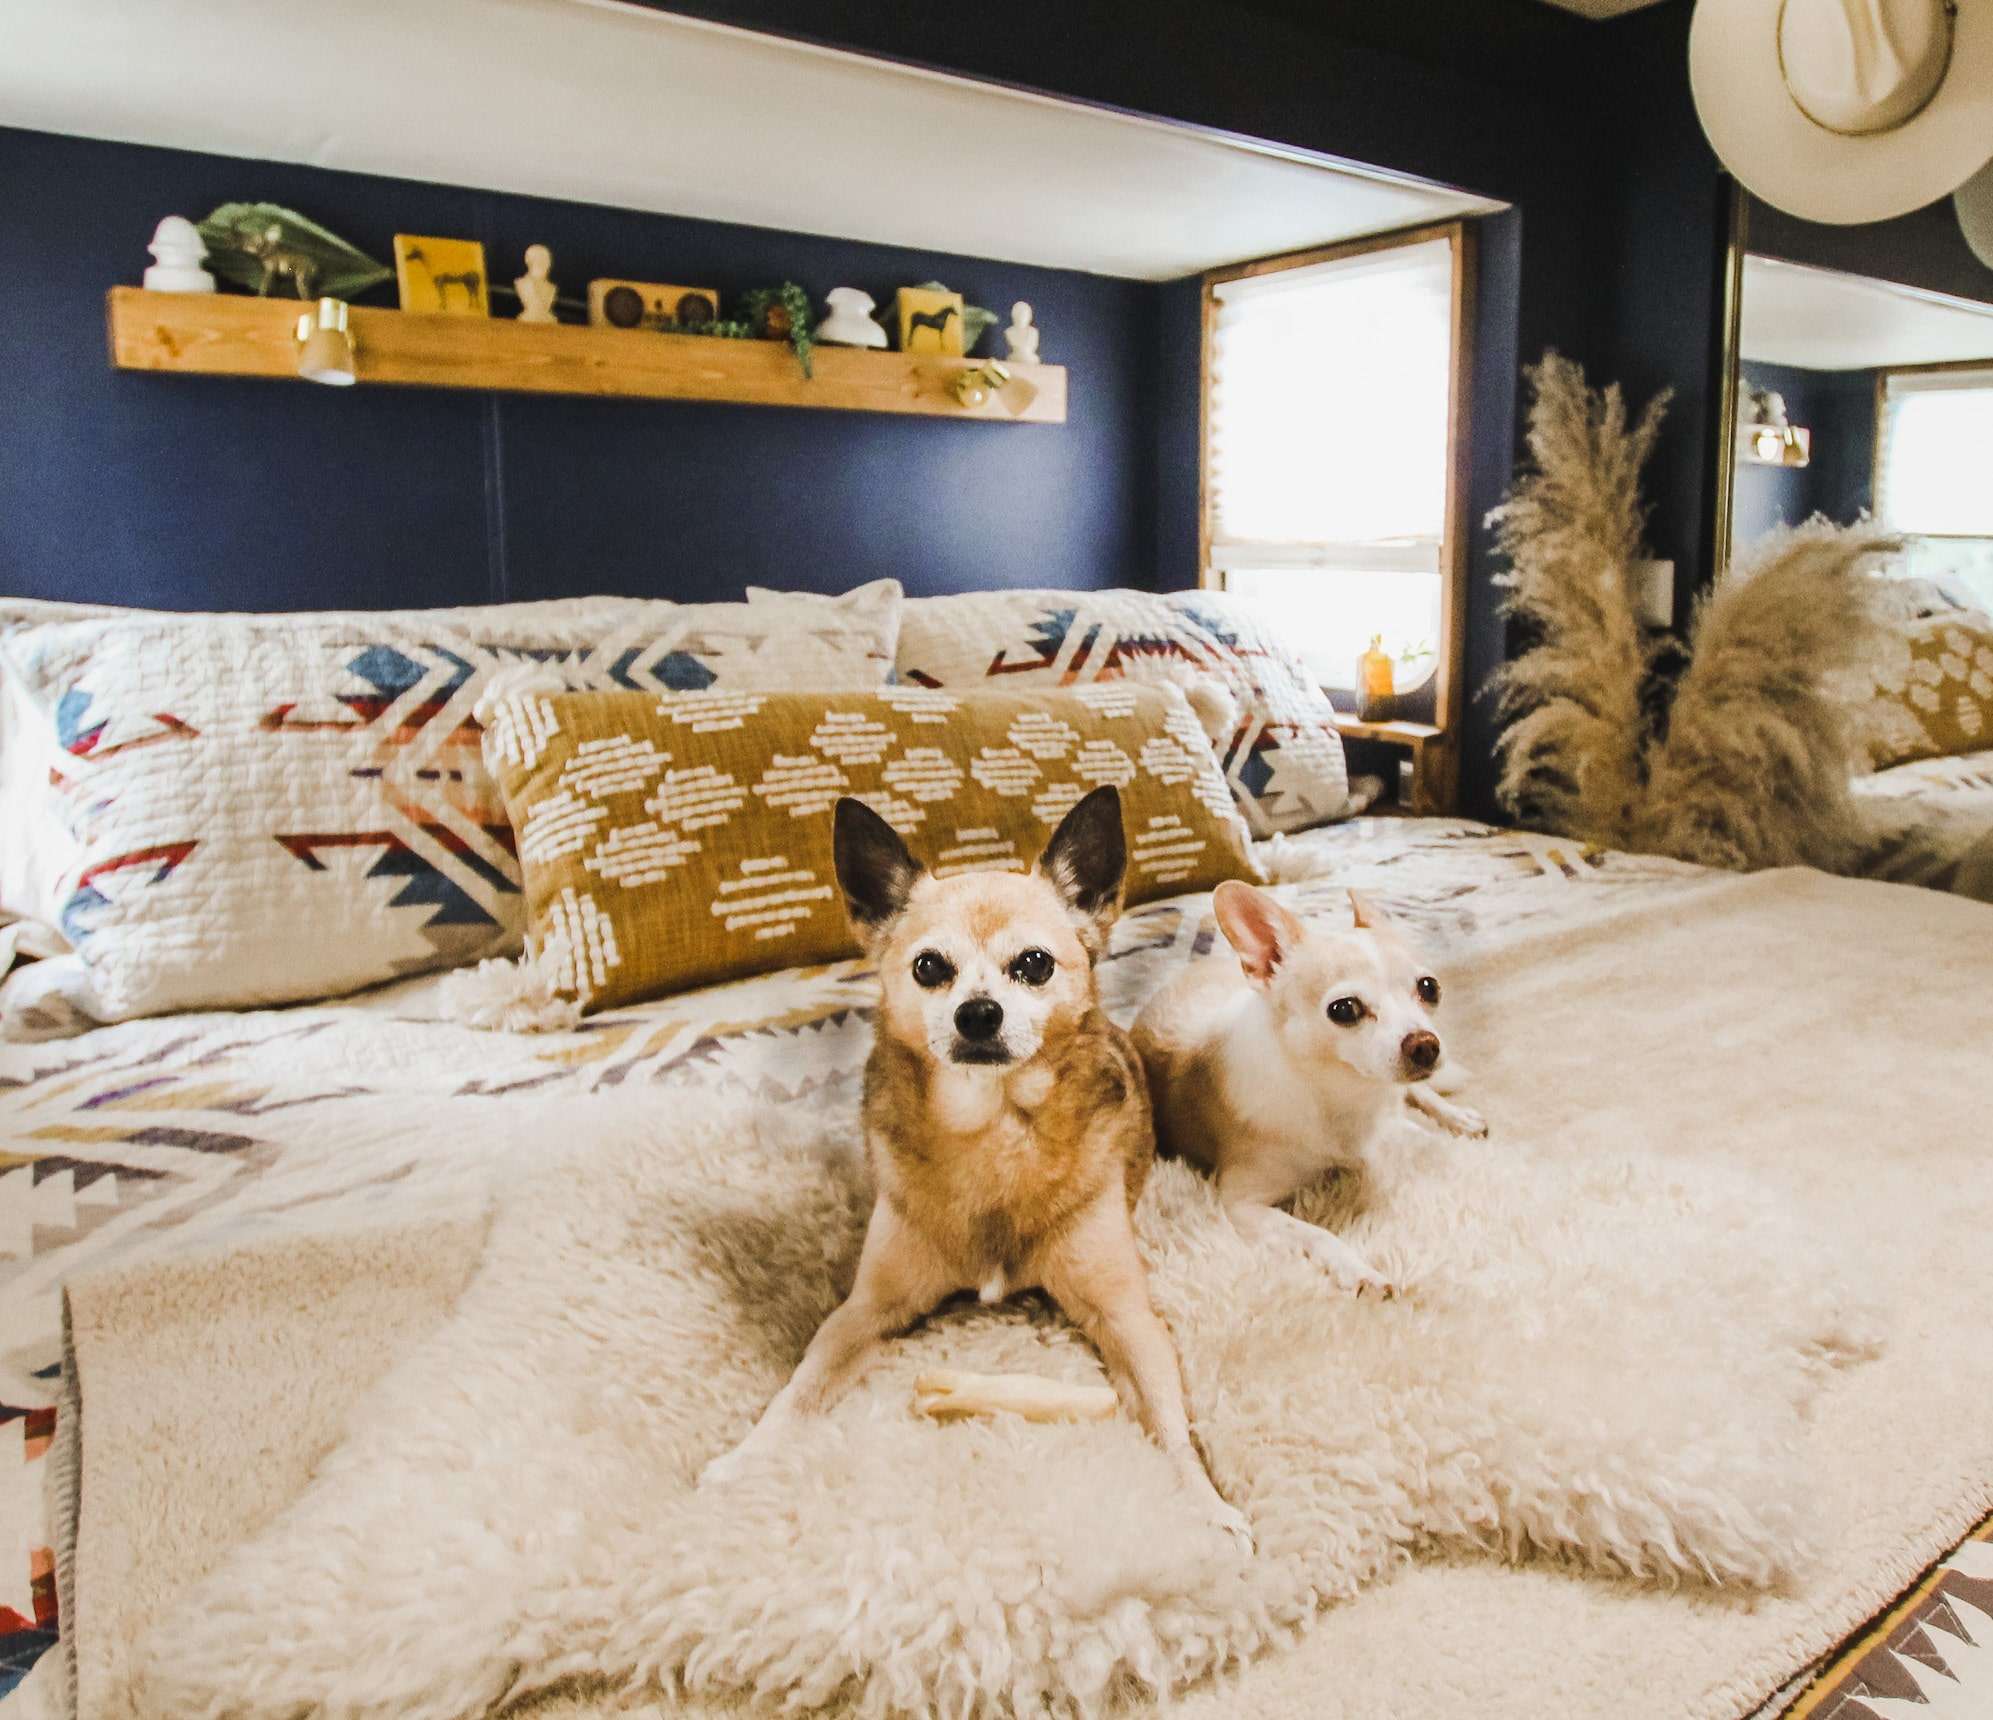 Two Dogs on a Bed.